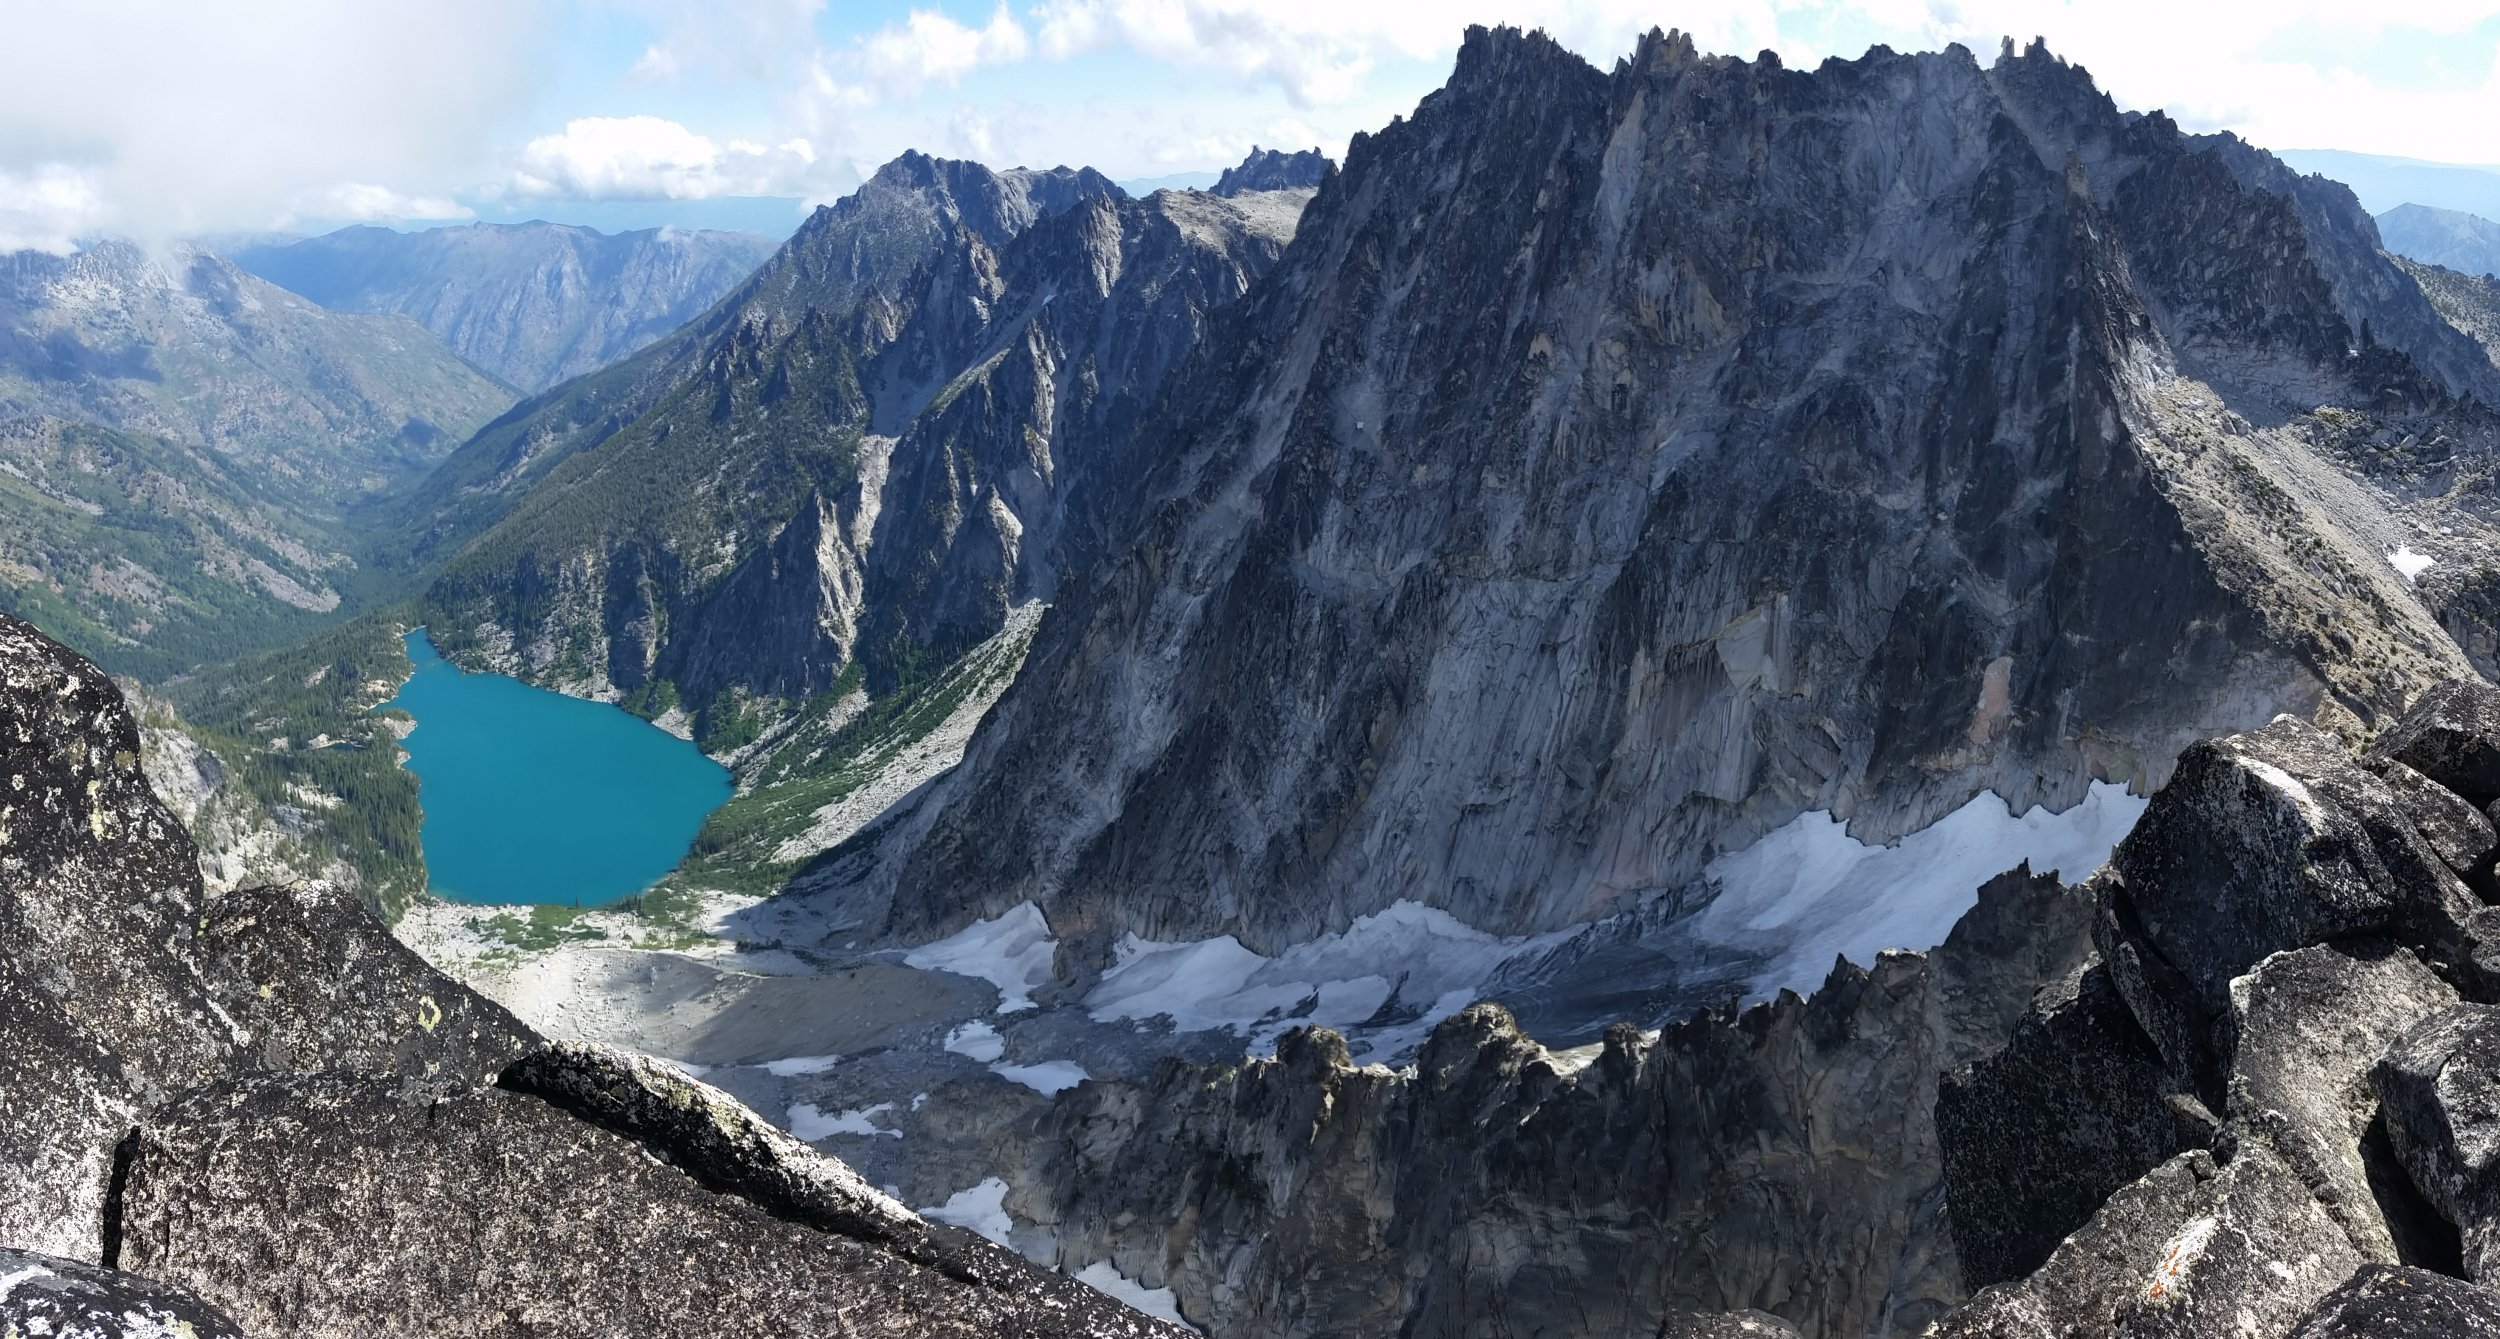 Colchuck Lake, Colchuck Glacier, and Dragontail Peak from the summit of Colchuck Peak.